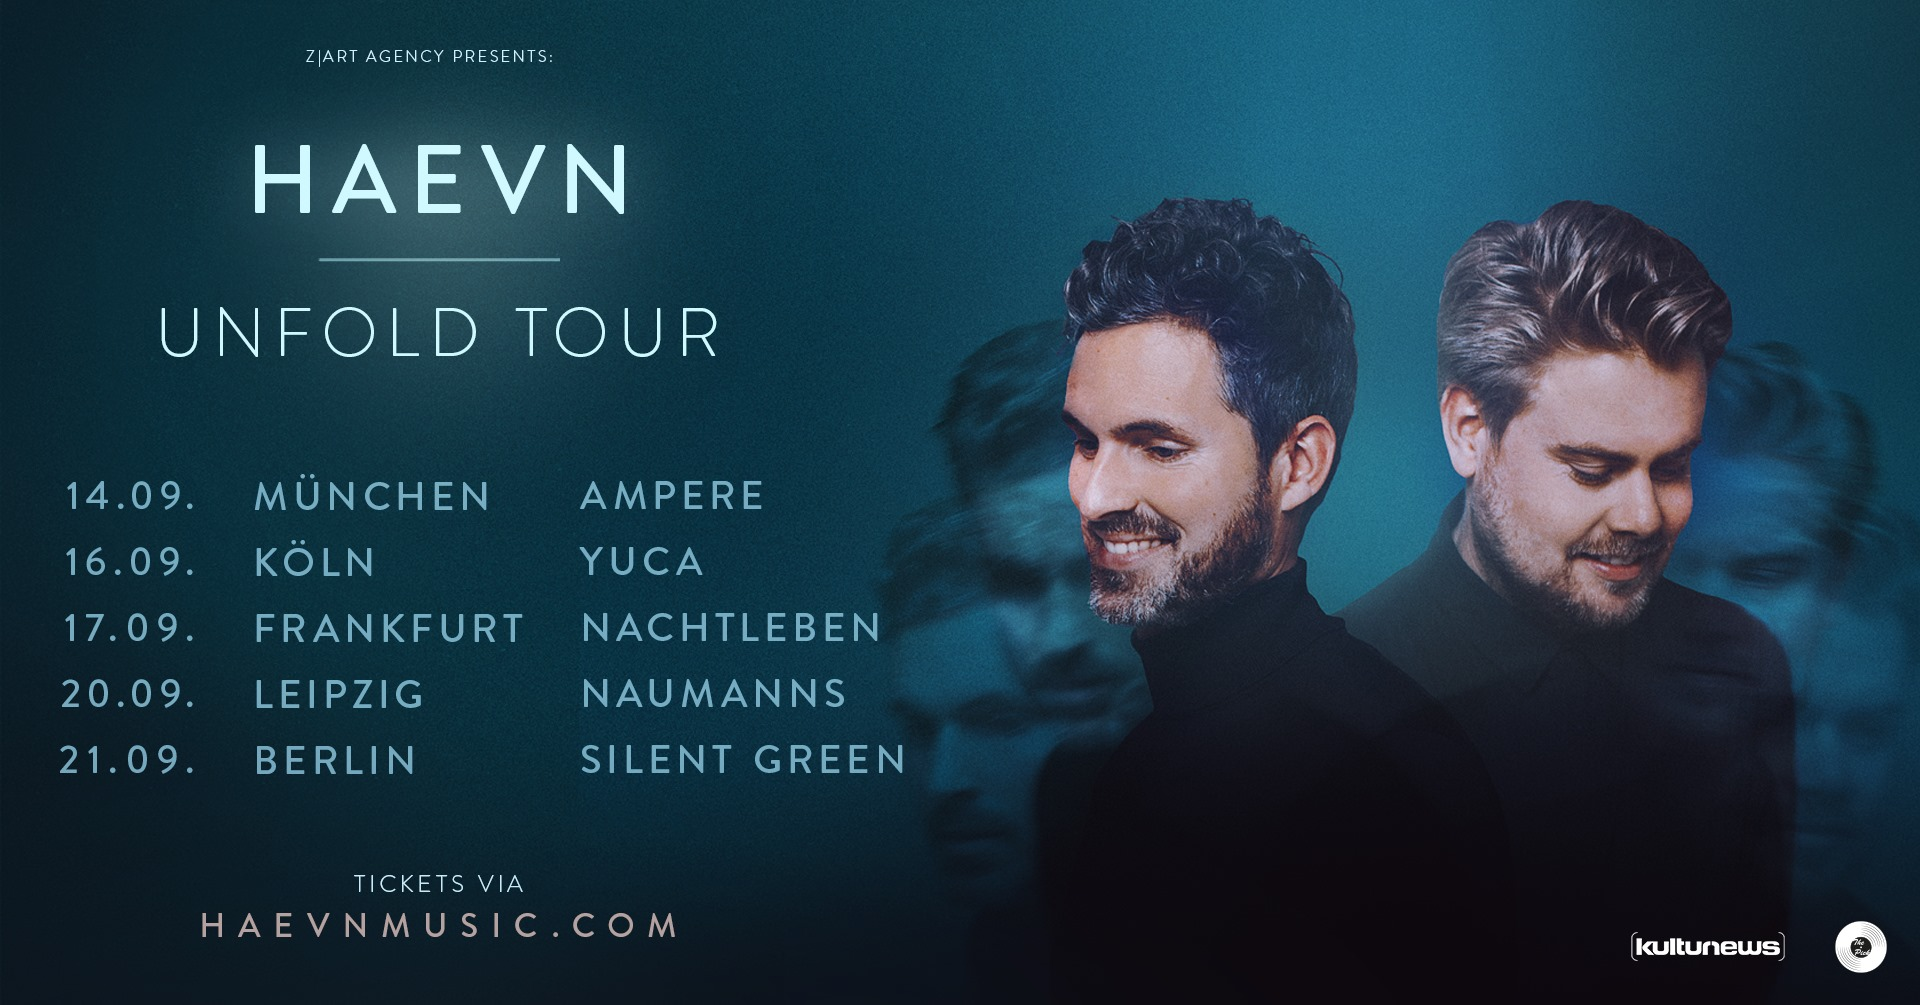 HAEVN Unfold Tour